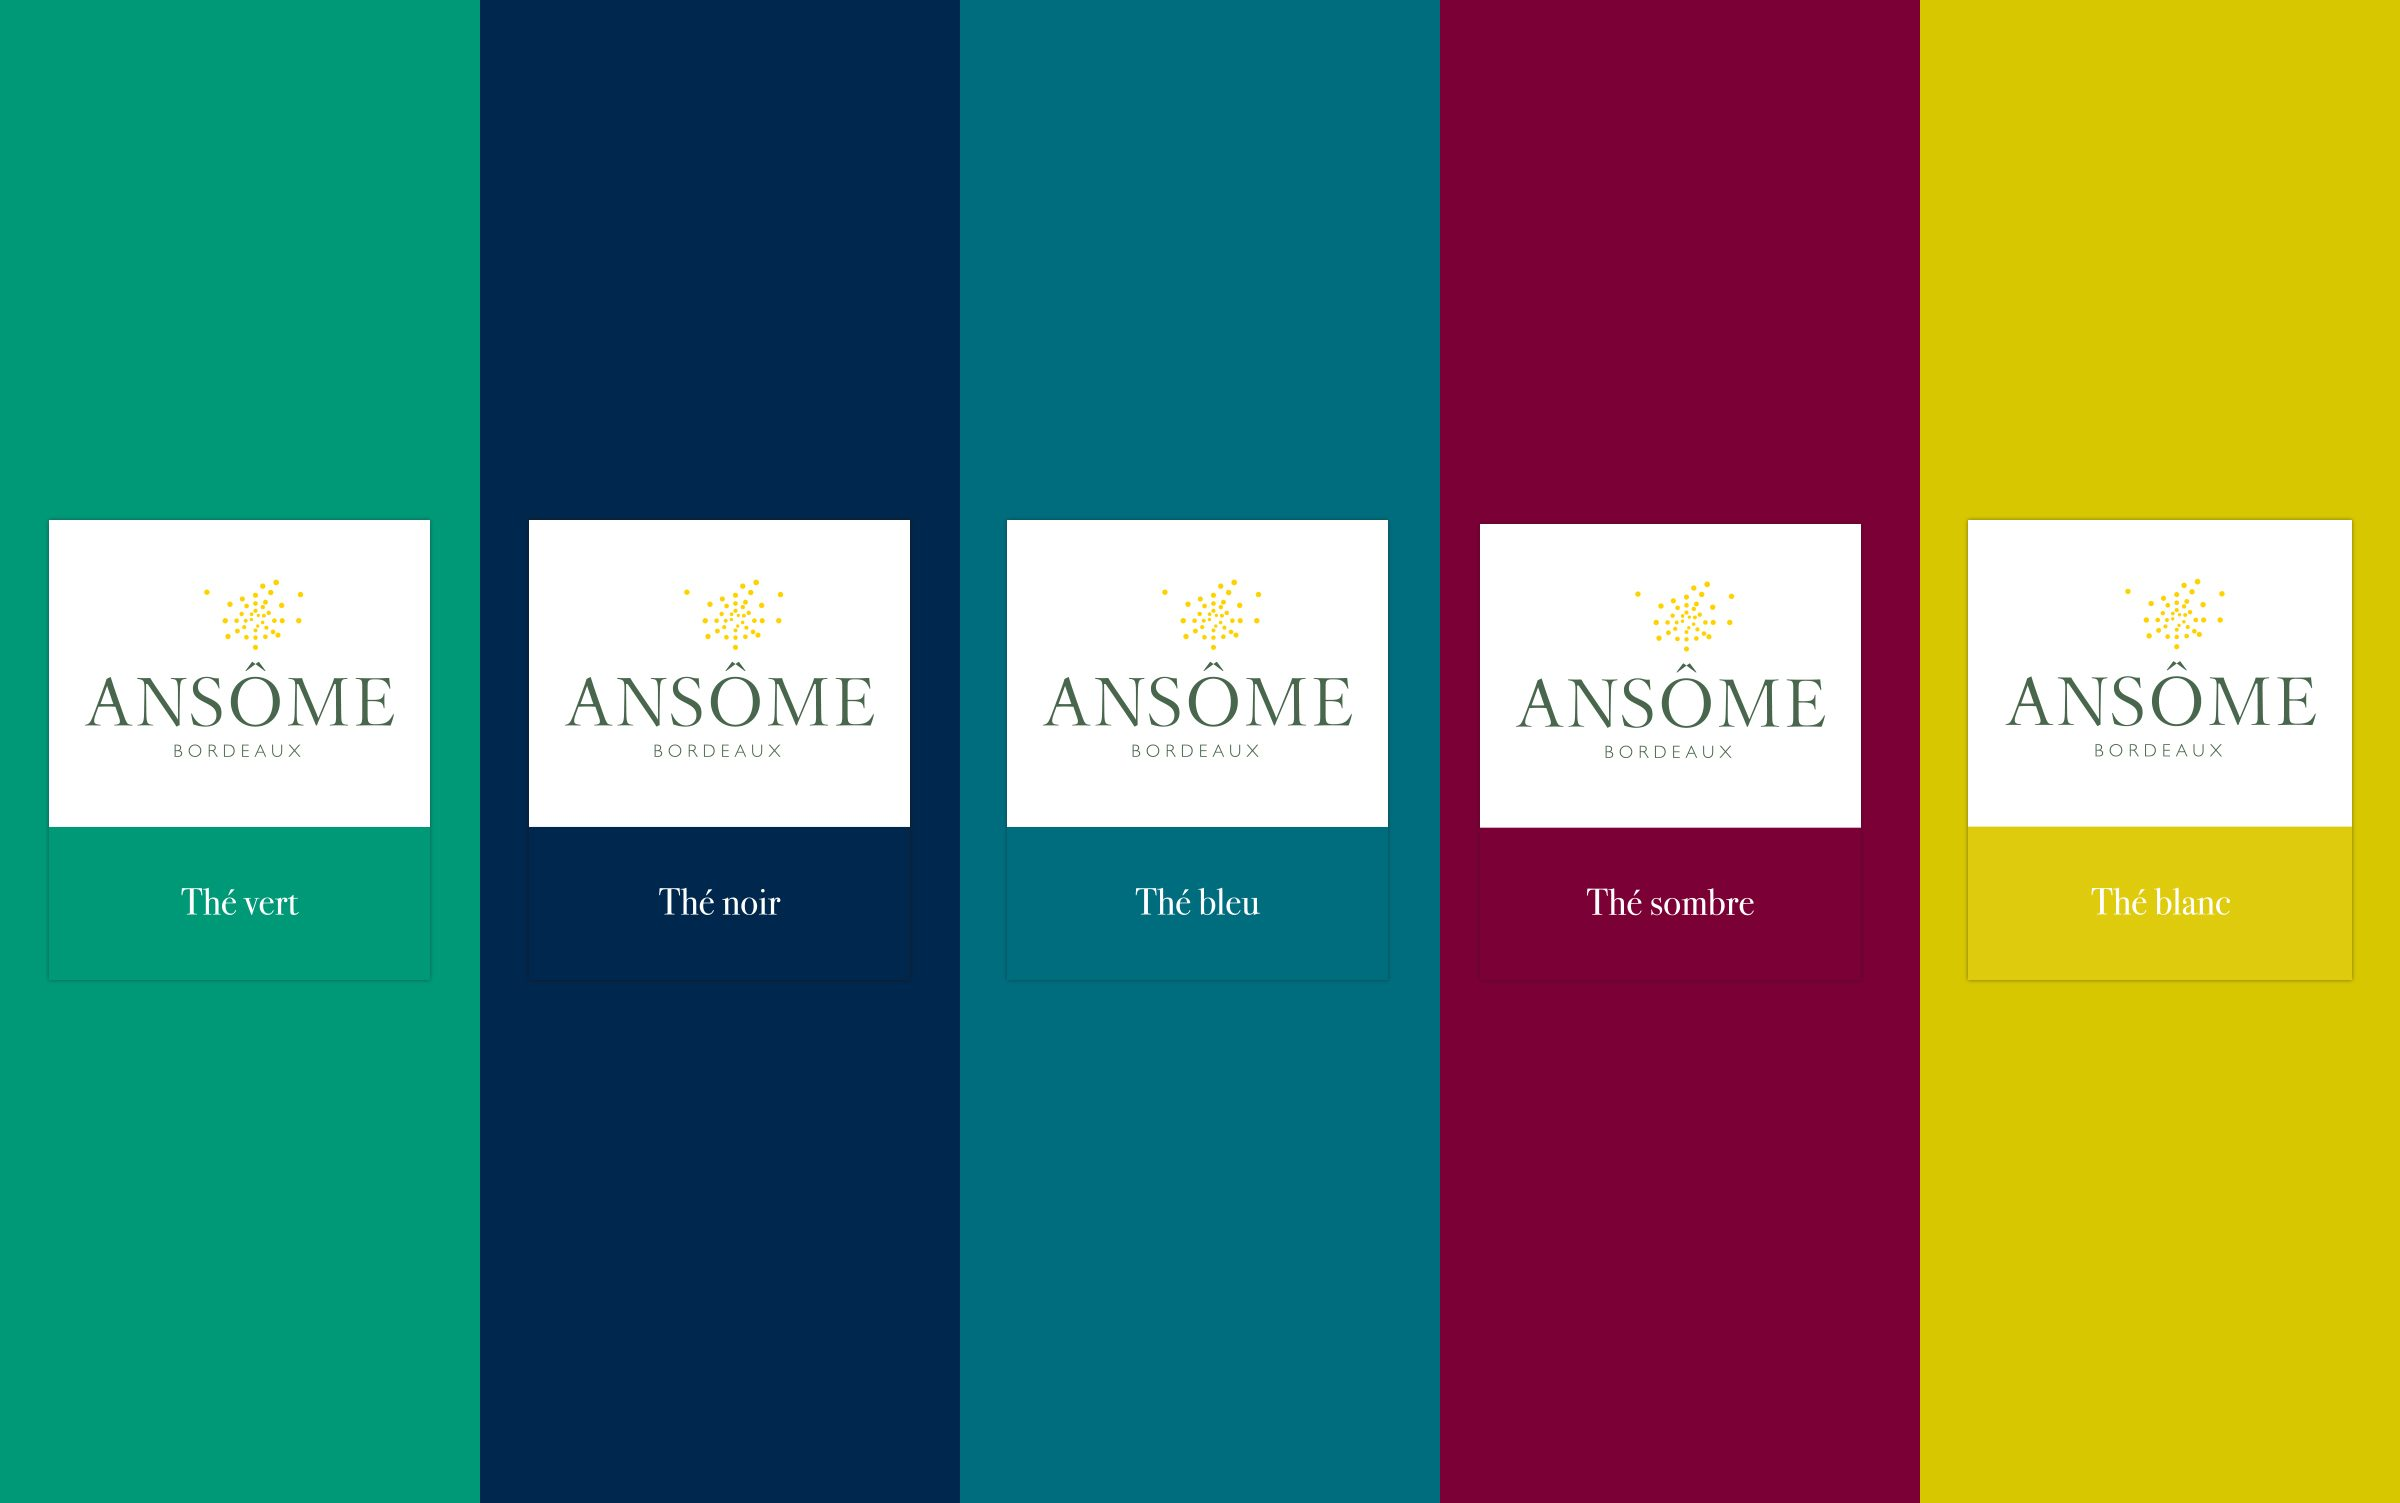 Ansome04